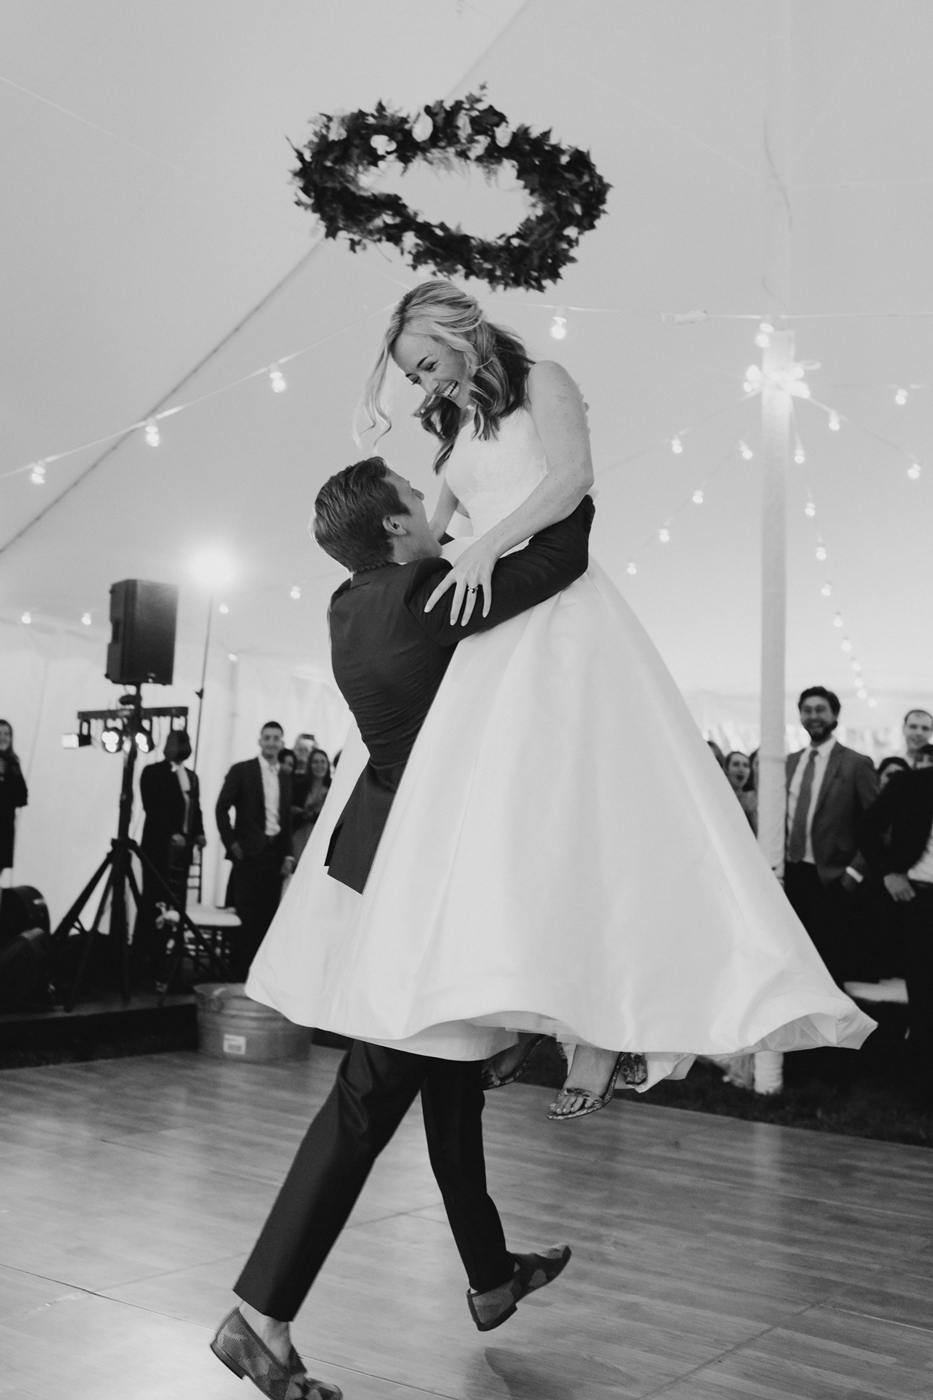 Our dear friends Christina and Alex at their wedding. Alex is wearing custom groomsmen shoes that were created for their wedding.